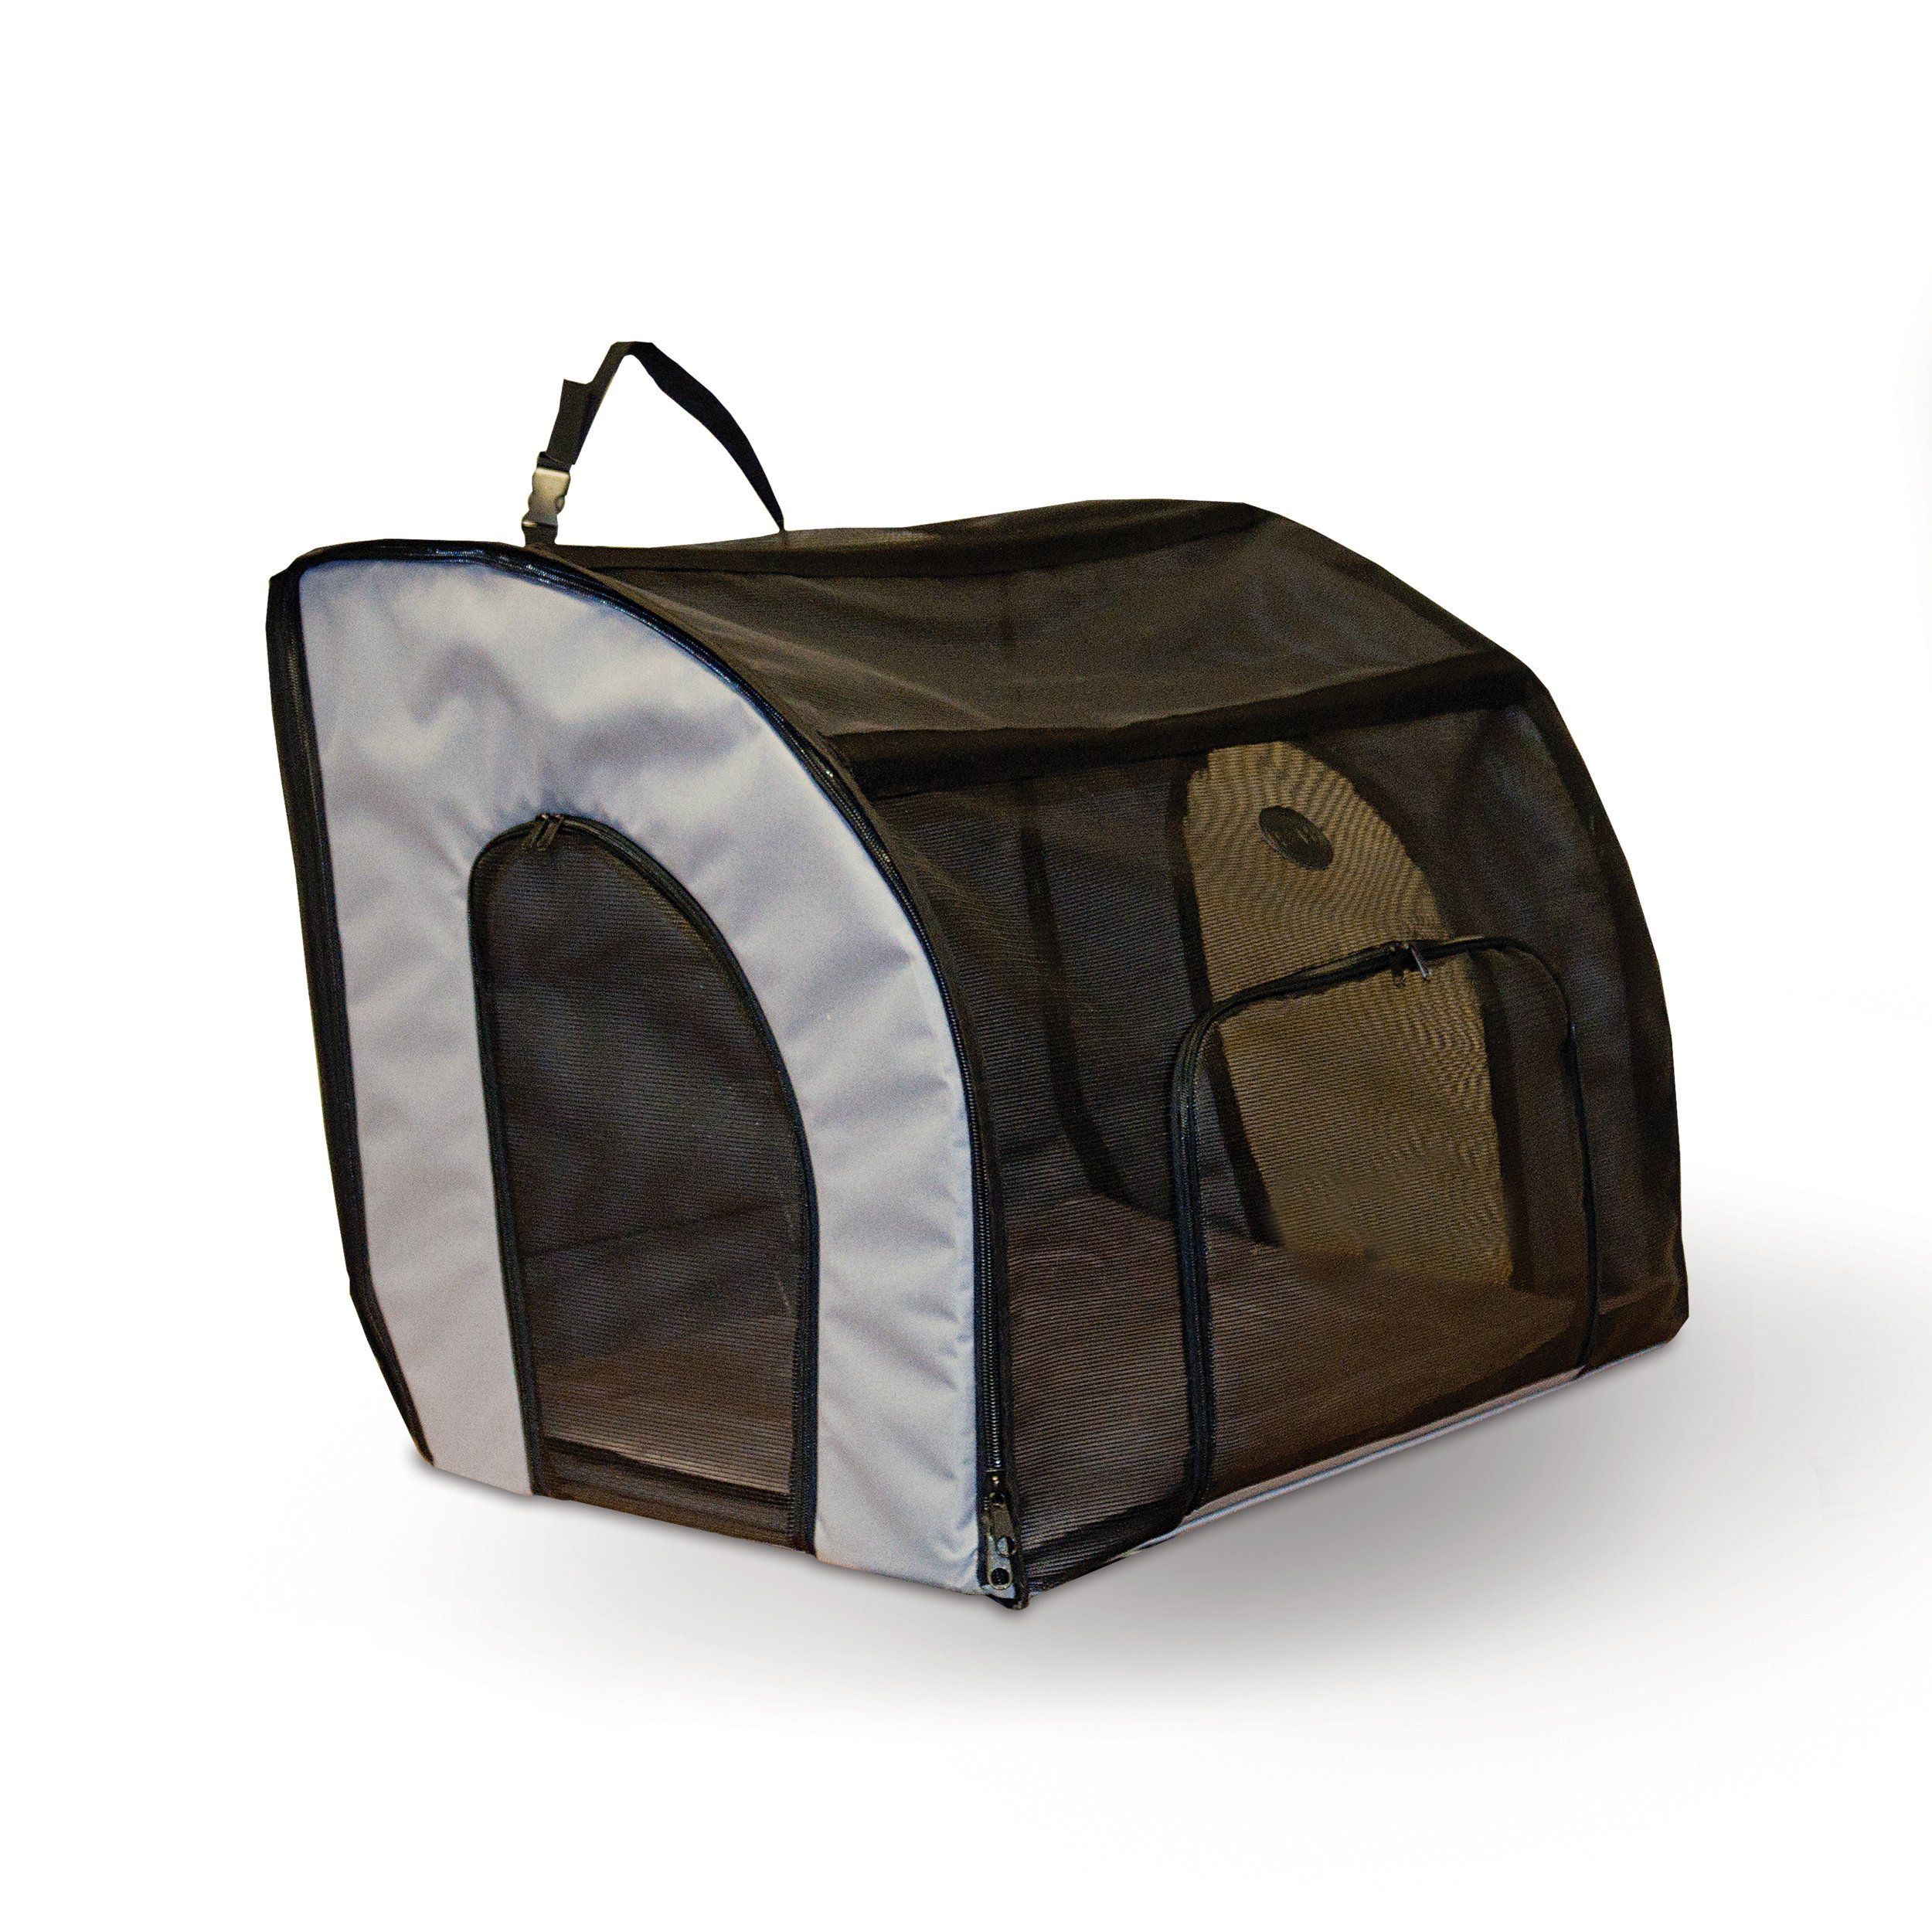 K&H Pet Products Travel Safety Pet Carrier Medium Gray 24'' x 19'' x 17''